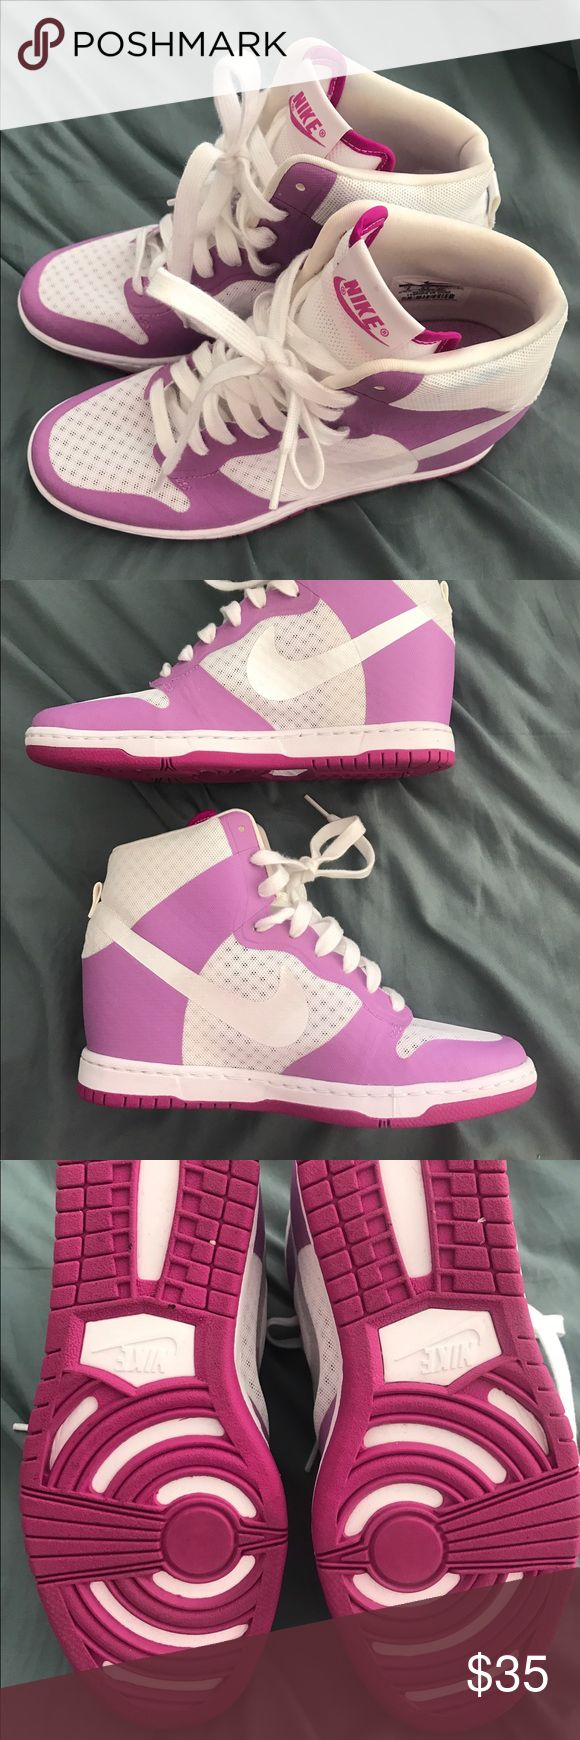 Nike Sky Hi Hidden Wedge Dunk Purple/pink Nike Dunk Size 8 Women's Hidden Wedge Sneaker Nike Shoes Wedges